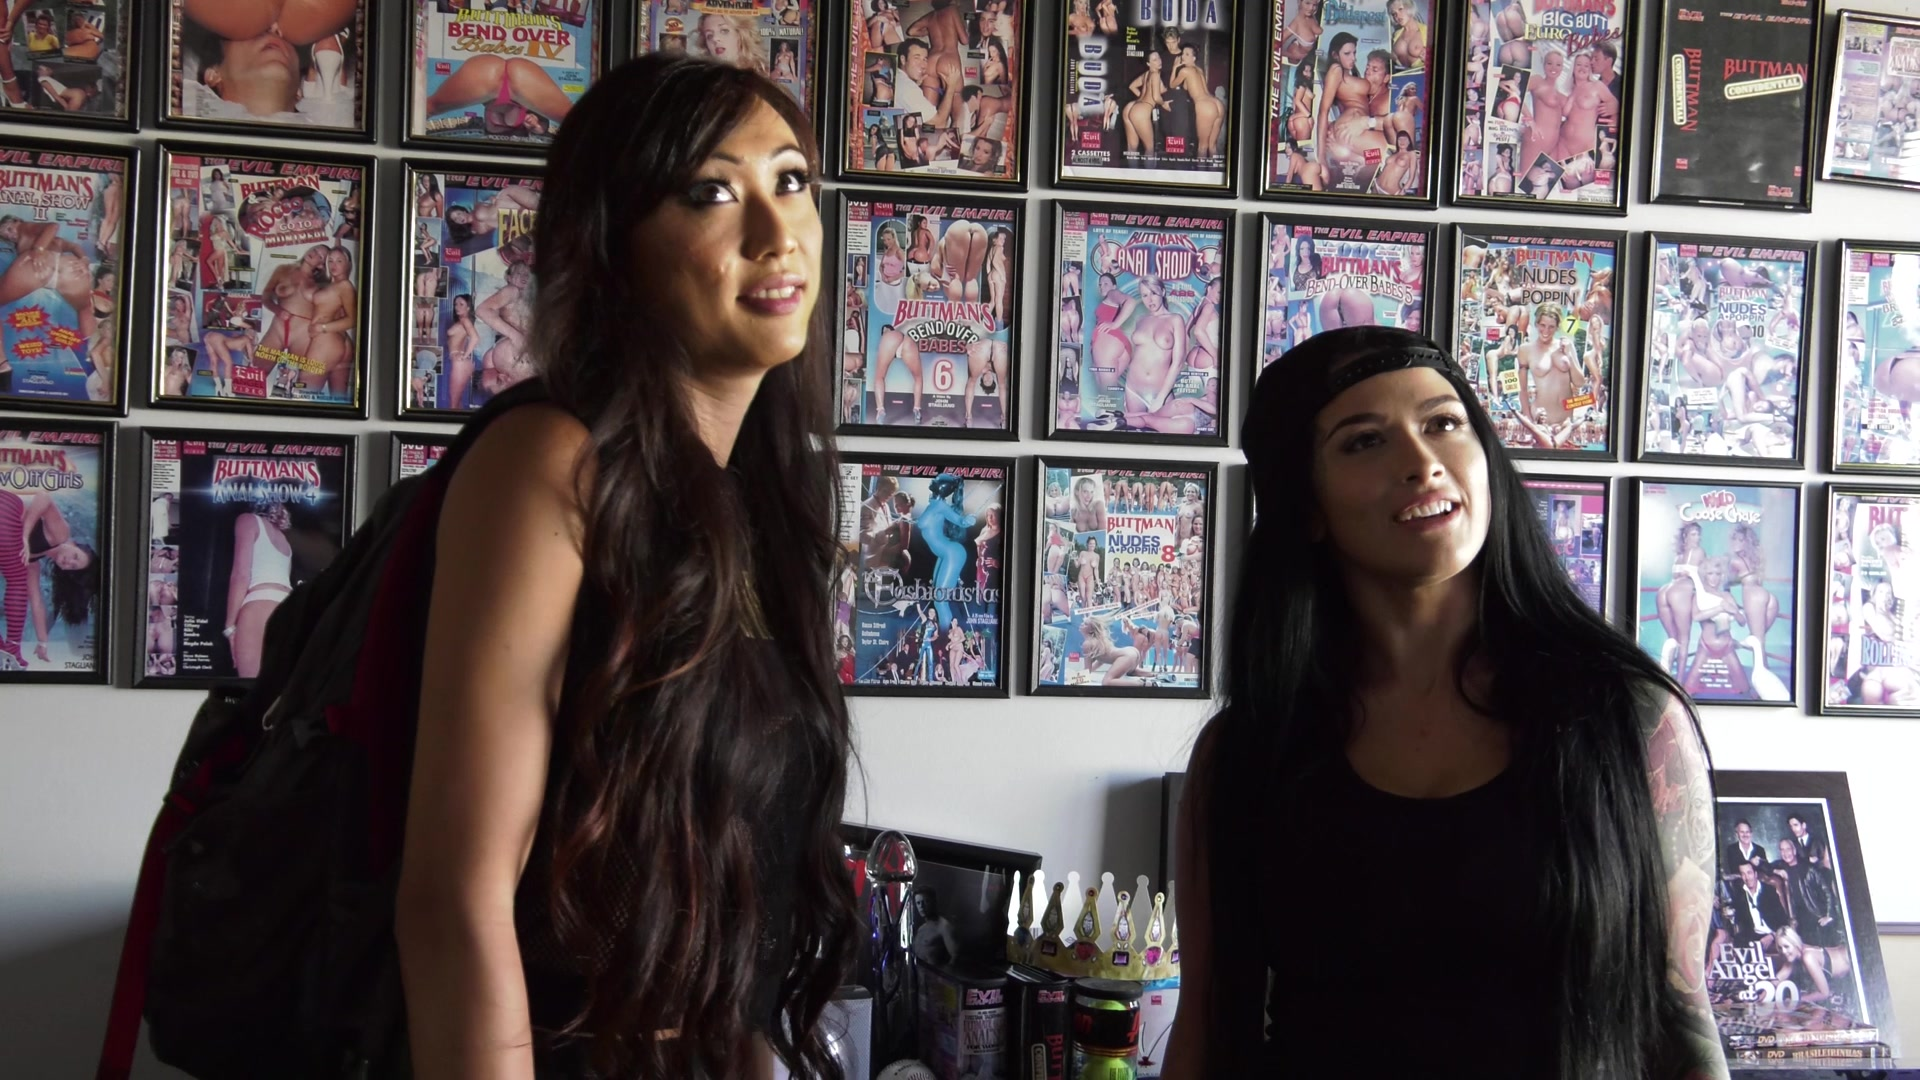 Scene with Venus Lux and Katrina Jade - image 3 out of 20